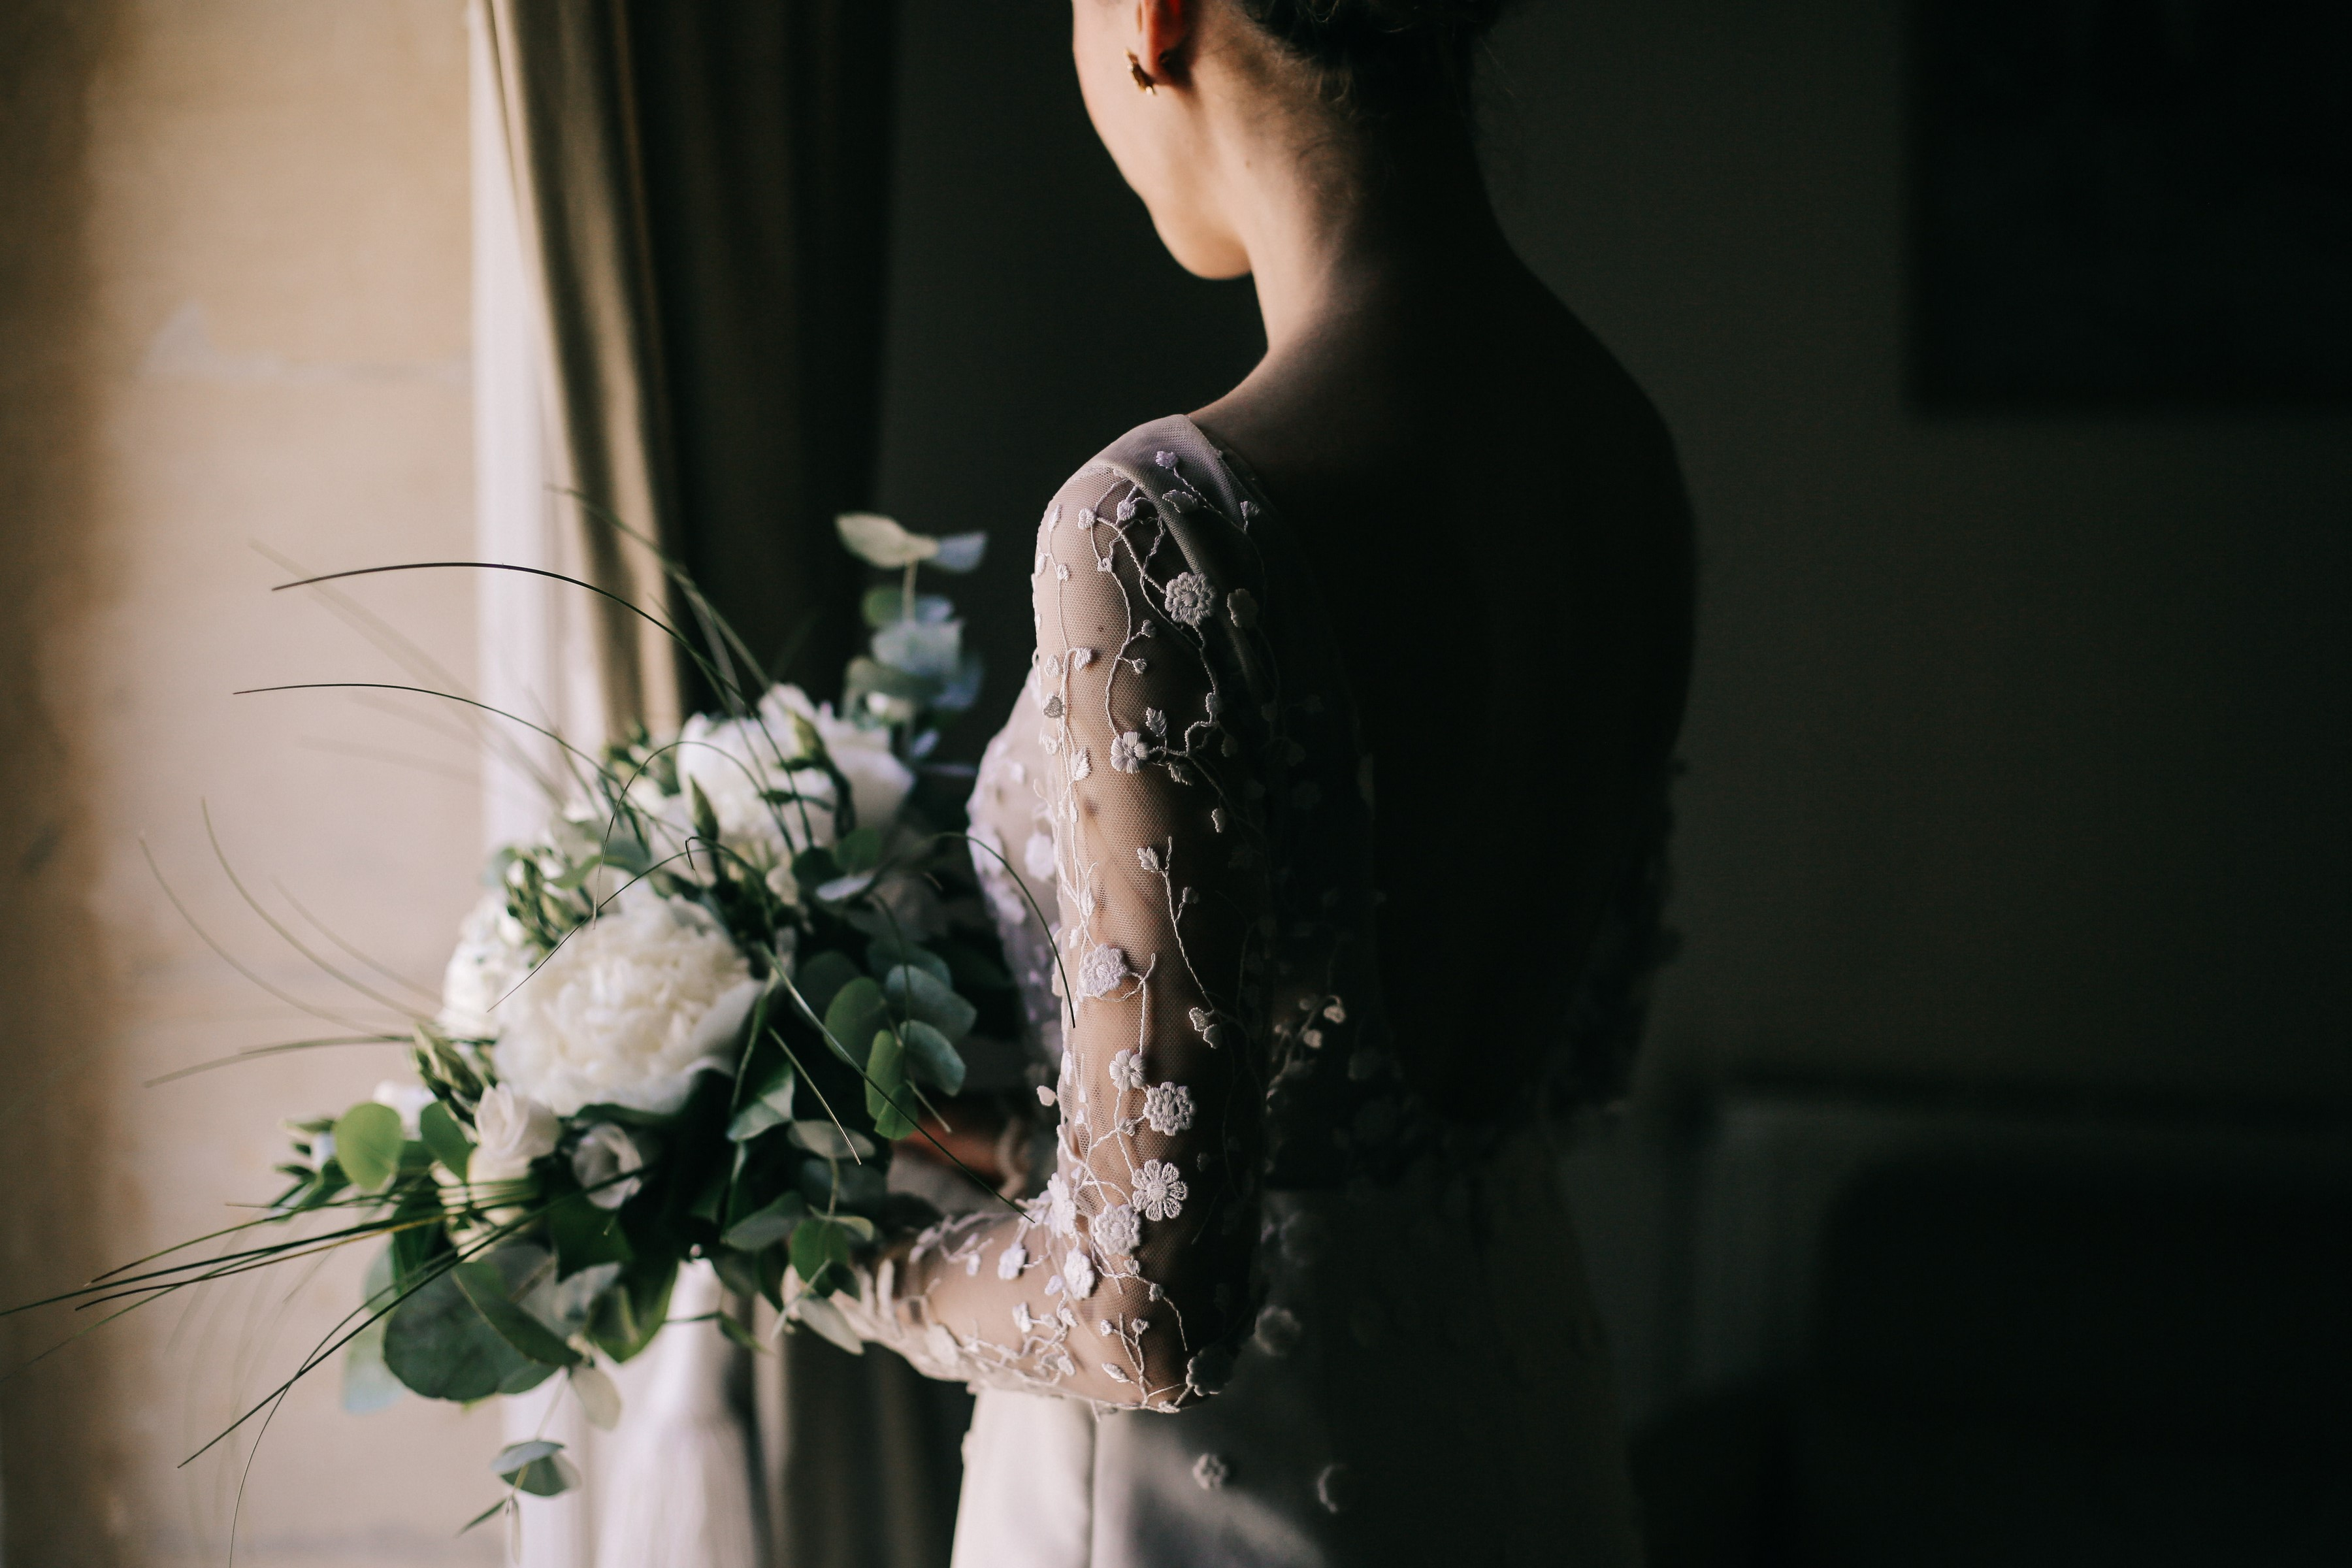 Backview detail of applique bridal gown - photo by Amandine Ropars